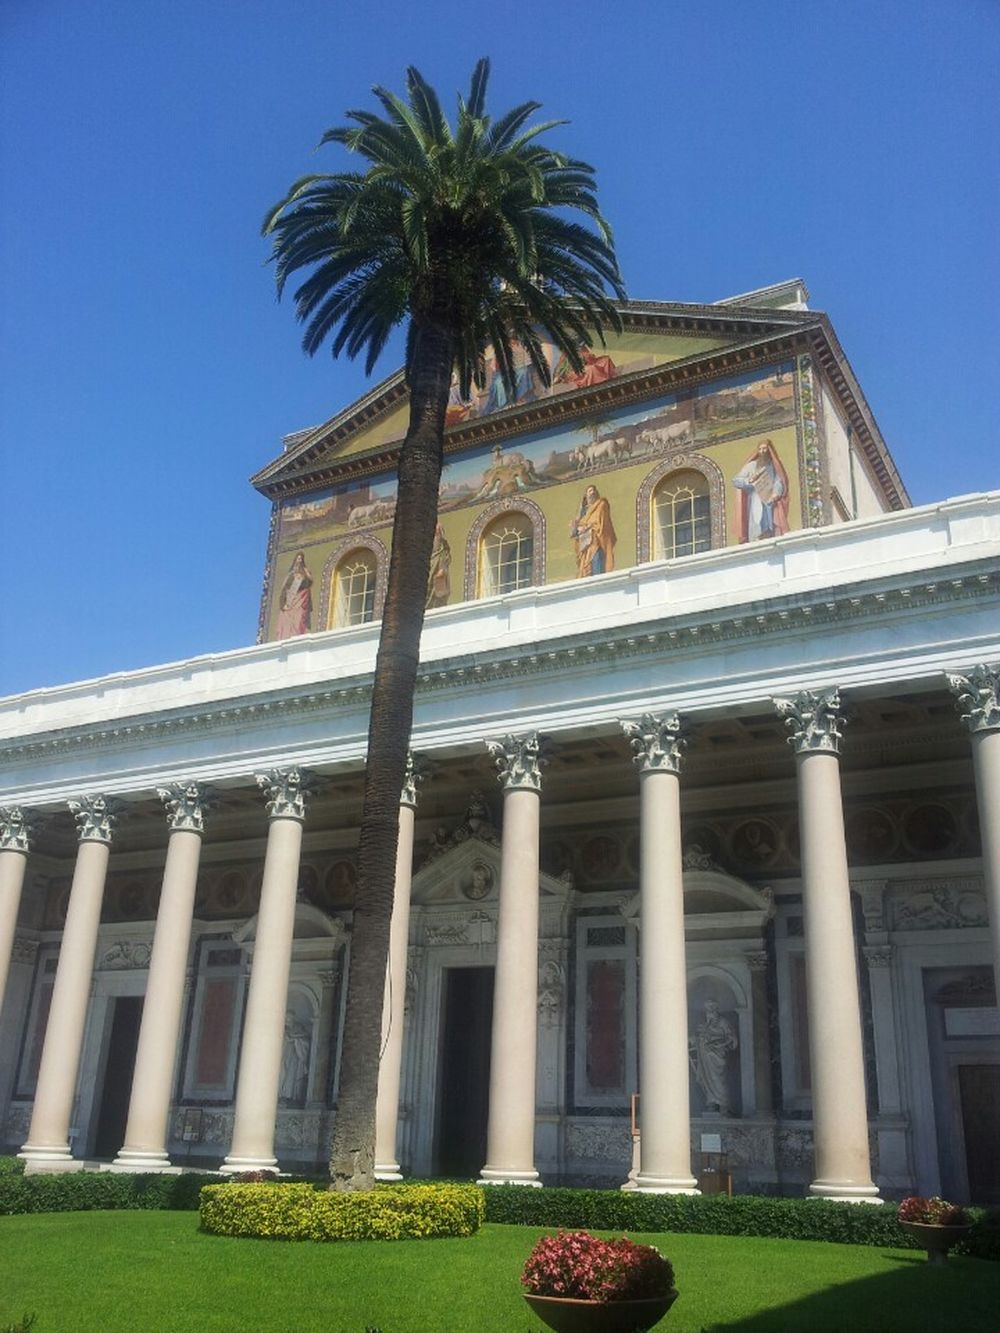 EyeEm_Church_Collection Basilica Di San Paolo Fuori Le Mura Church Palmtree EyeEm Rome Rome Basilica